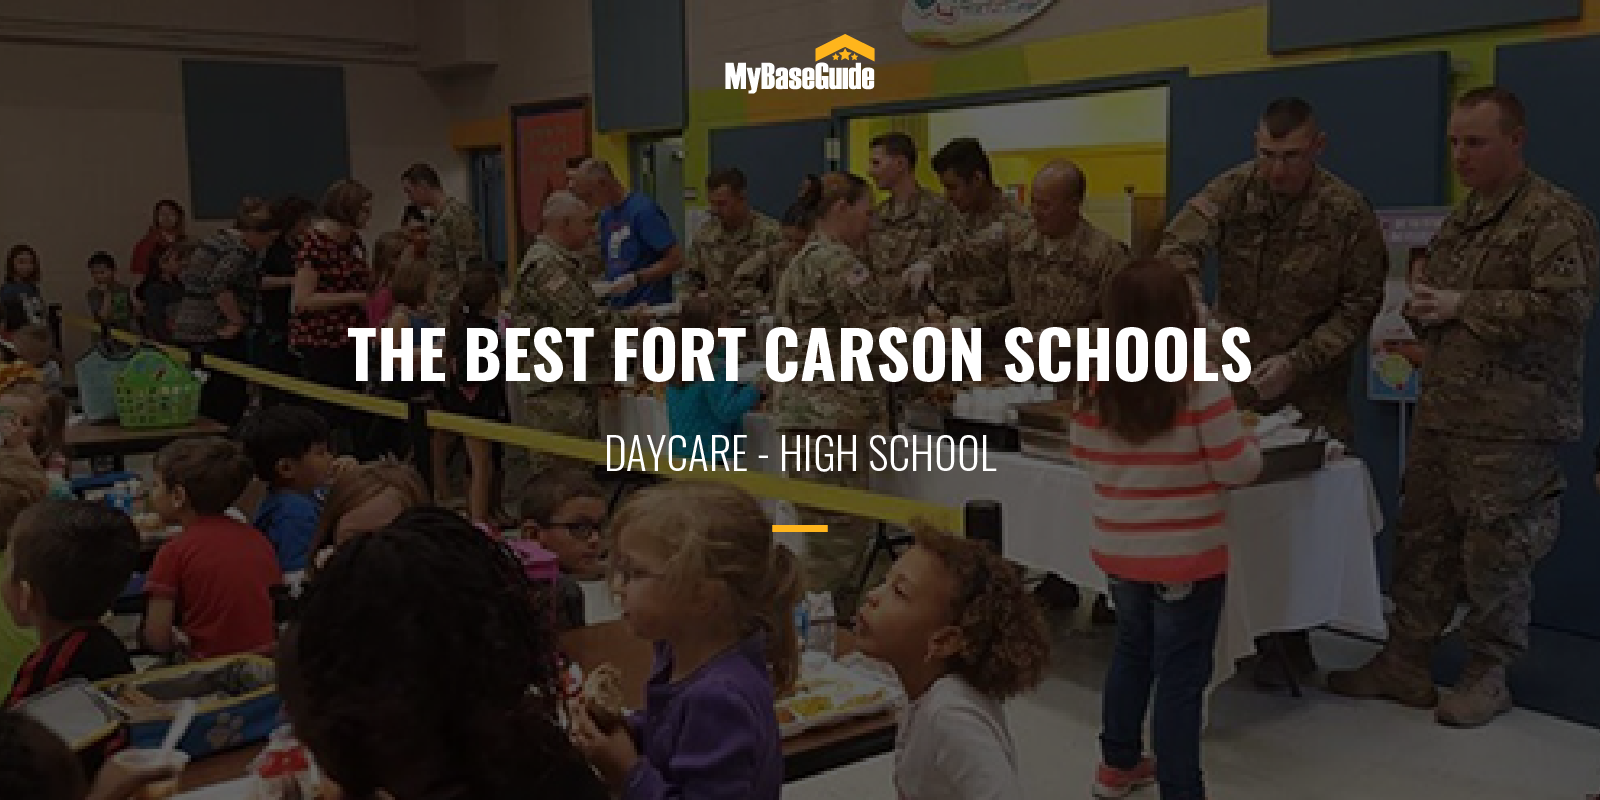 The Best Fort Carson Schools